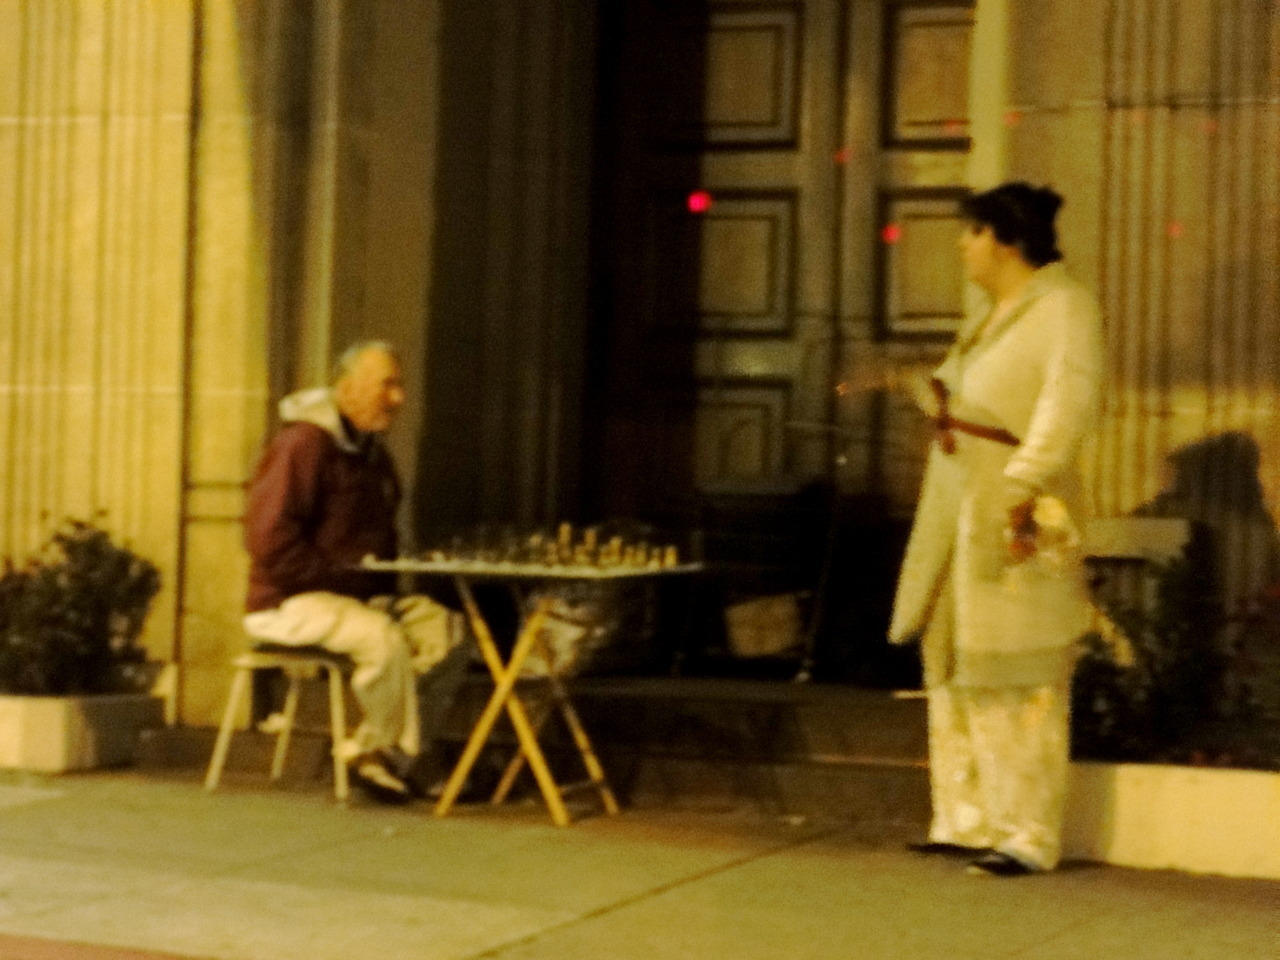 Playing chess outside a mortuary on Divisadero and Geary.  Bathrobes.  10:30 or so at night.  Nothing amiss here.